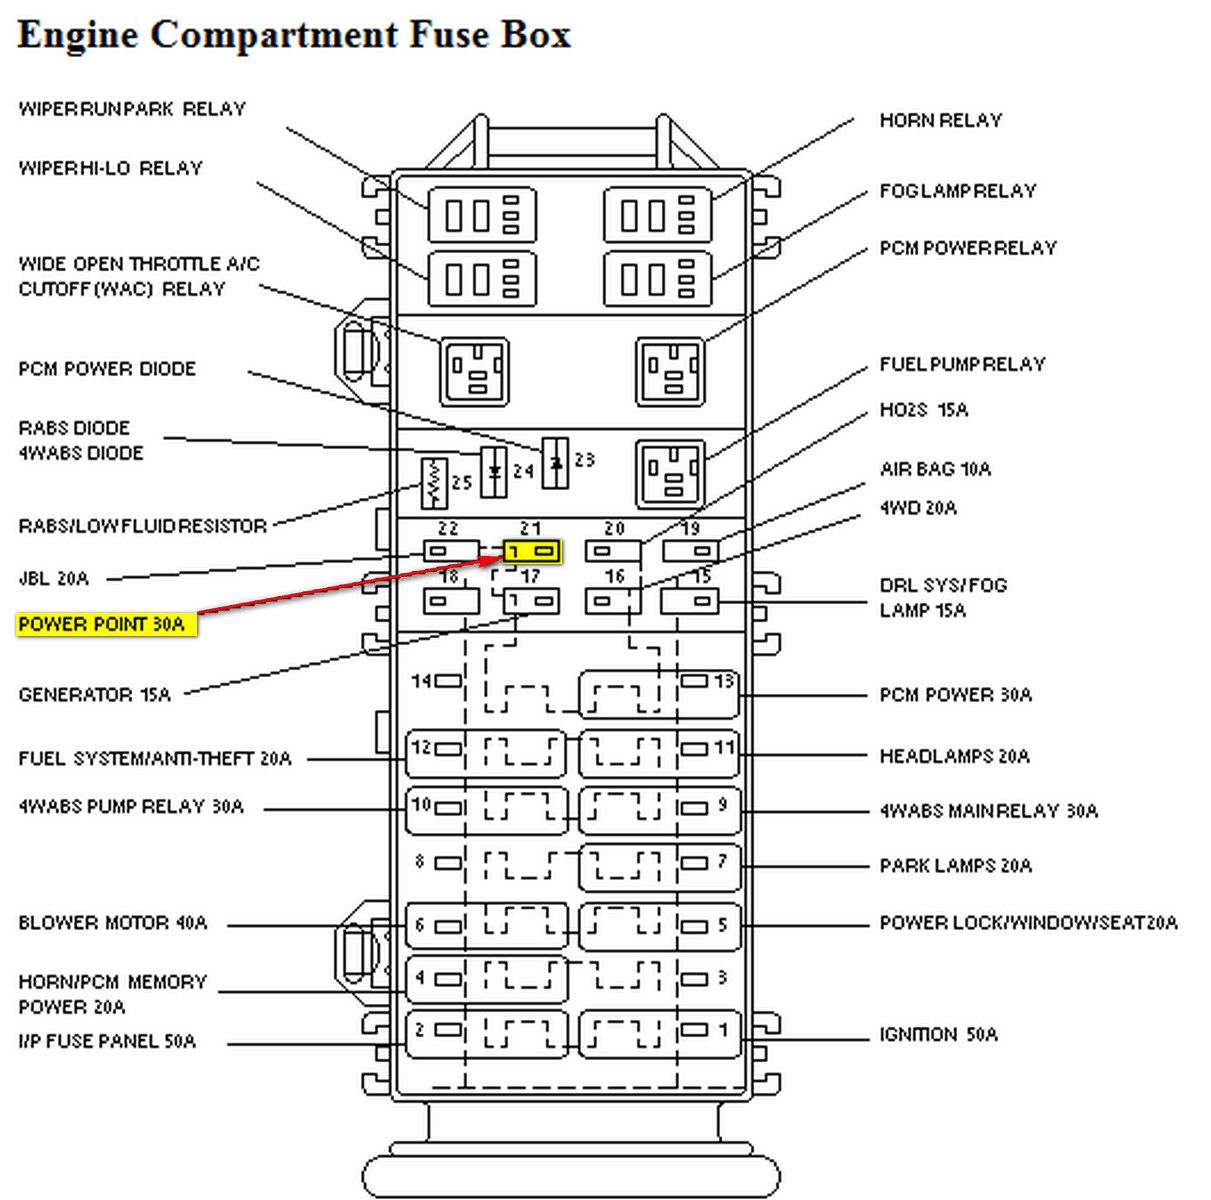 small resolution of 2006 ford ranger fuse box diagram wiring diagram origin 1998 ford ranger fuse diagram 1997 ford